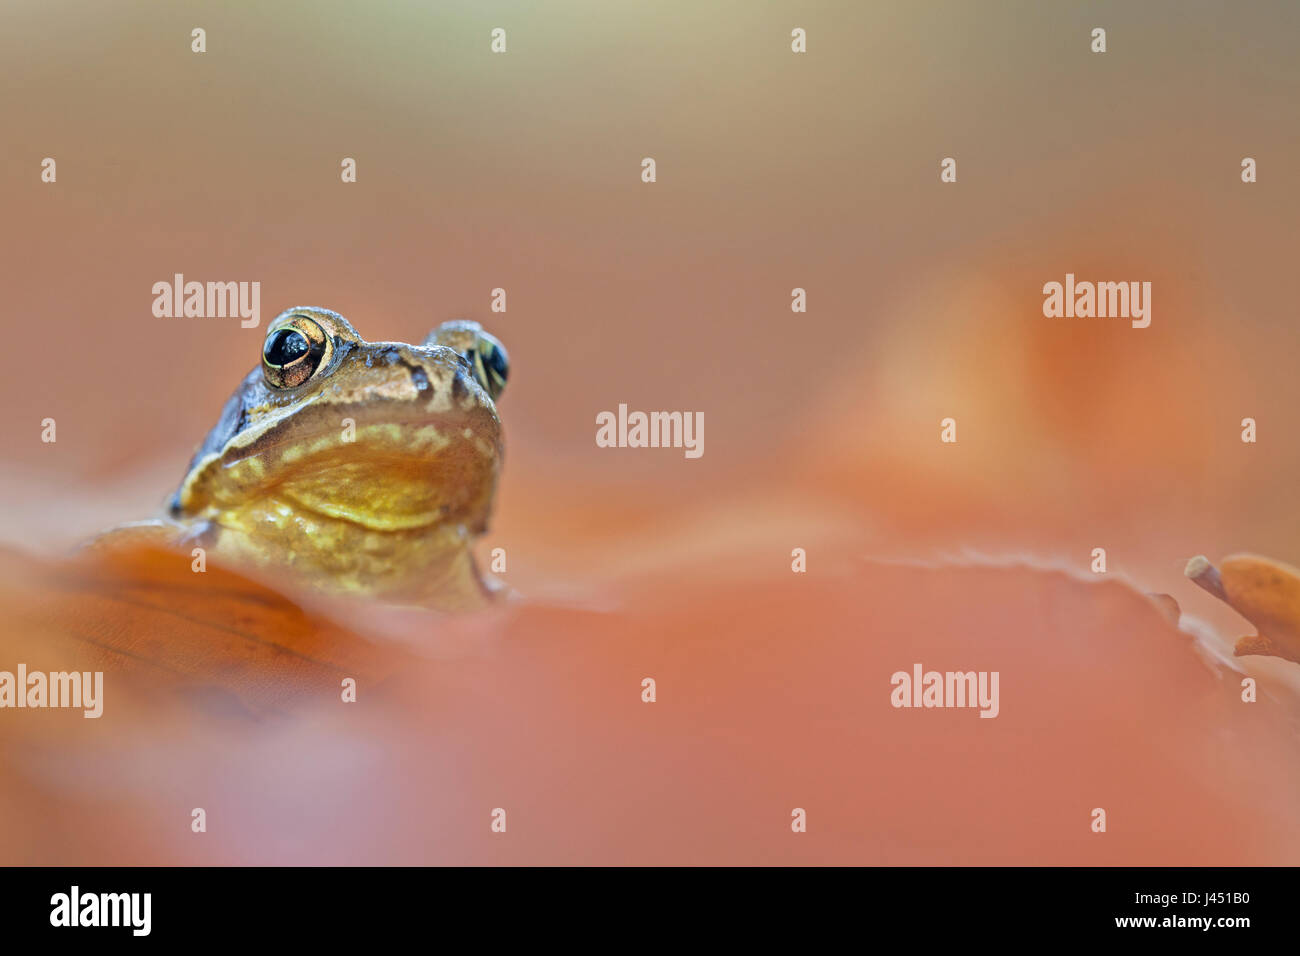 common frog between autumn leaves - Stock Image